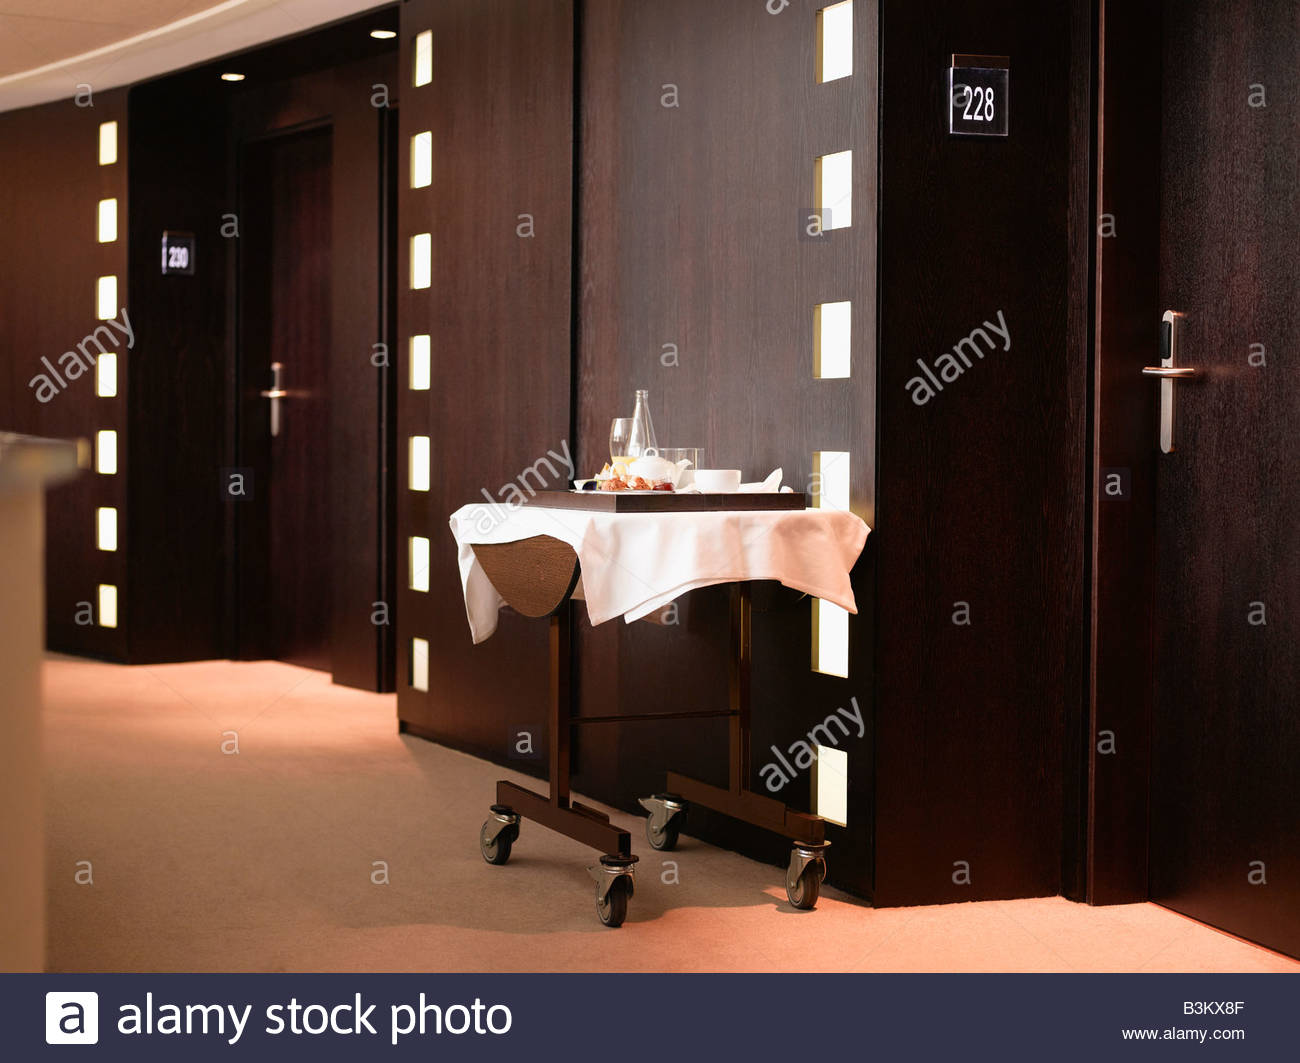 Discarded room service dishes in hotel corridor - Stock Image